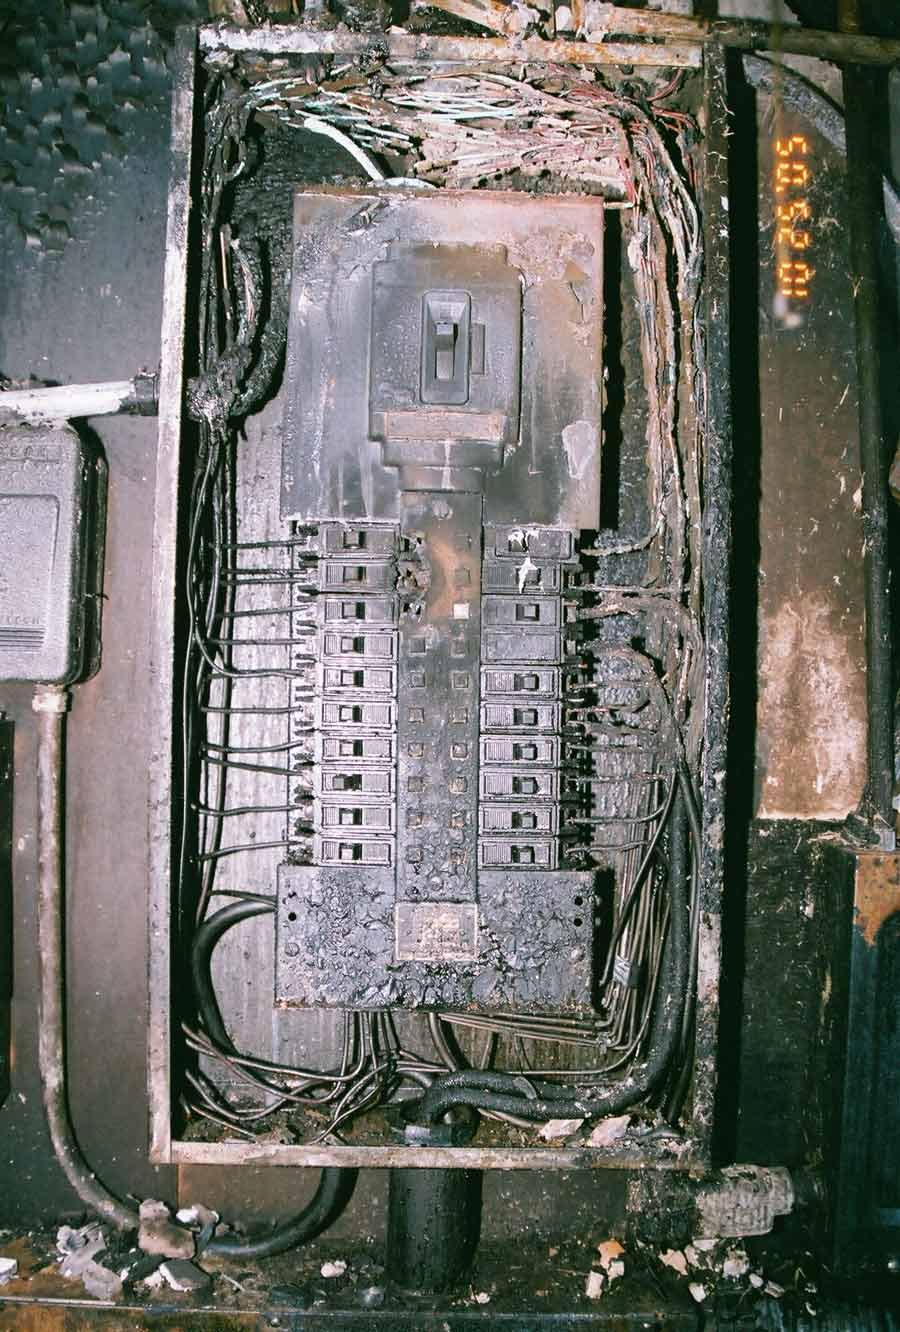 Severe Electrical Arcing in Panel Box